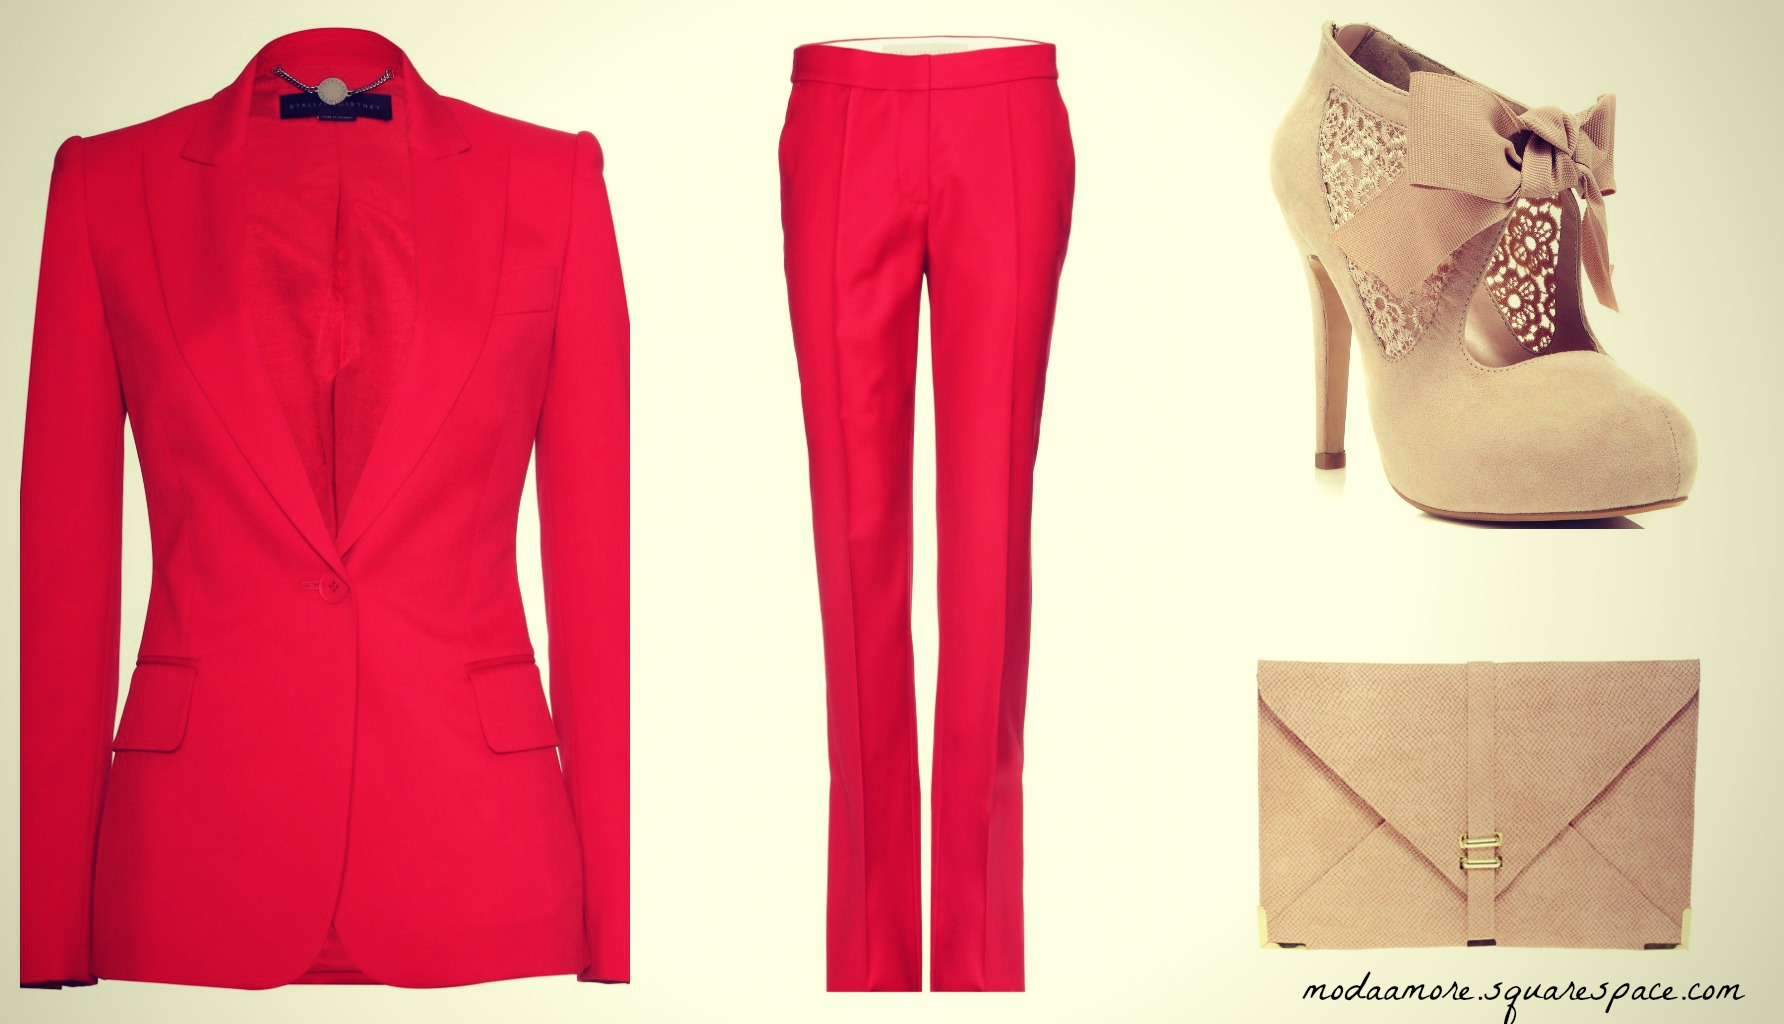 Stella McCartney Wool Blazer. Price:$933 MYTHERESA.COM   Stella McCartney Wool Trousers. Price:$464 MYTHERESA.COM  Sally Nude Town Shoe-Price: $80 MISSSELFRIDGE.COM  Slot Through Envelope Clutch. Sale Price:$24.56 ASOS.COM